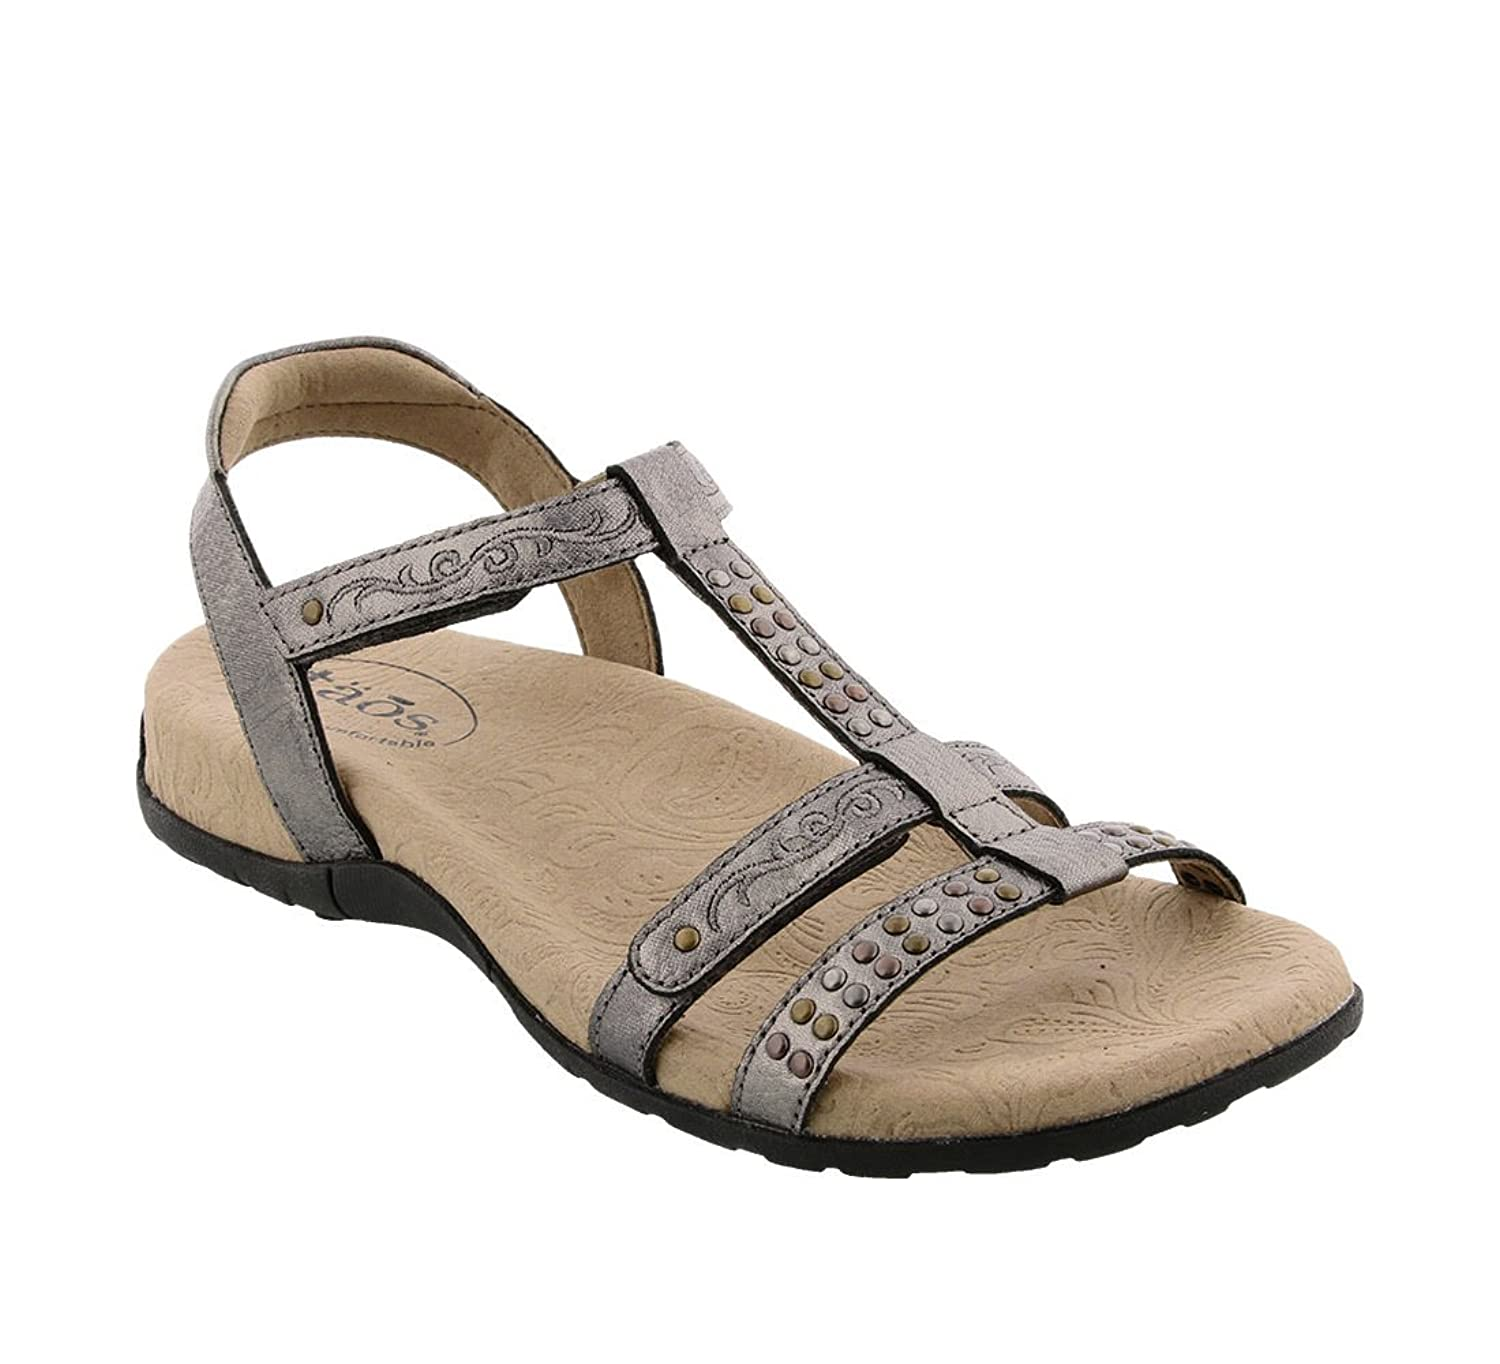 Taos Footwear Women's Award Sandal